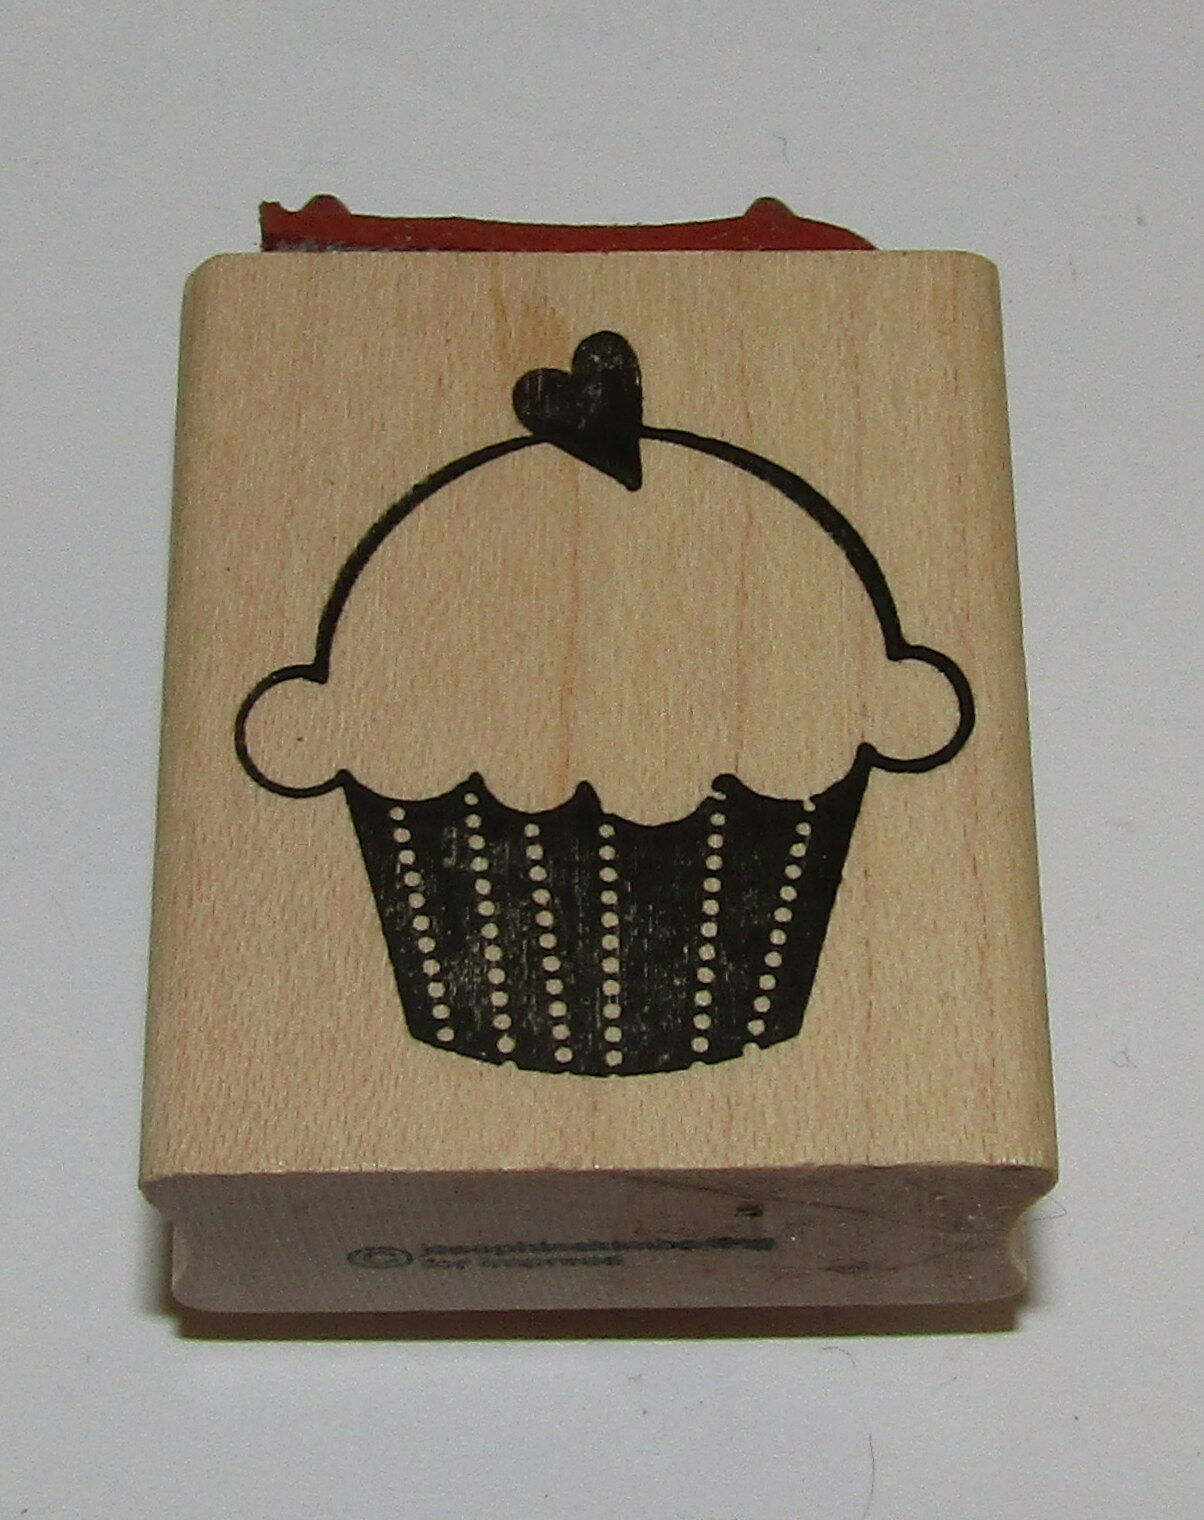 Primary image for Hey Cupcake Rubber Stamp Heart 2-in-1 Saying Design Wood Mounted Heart Impress